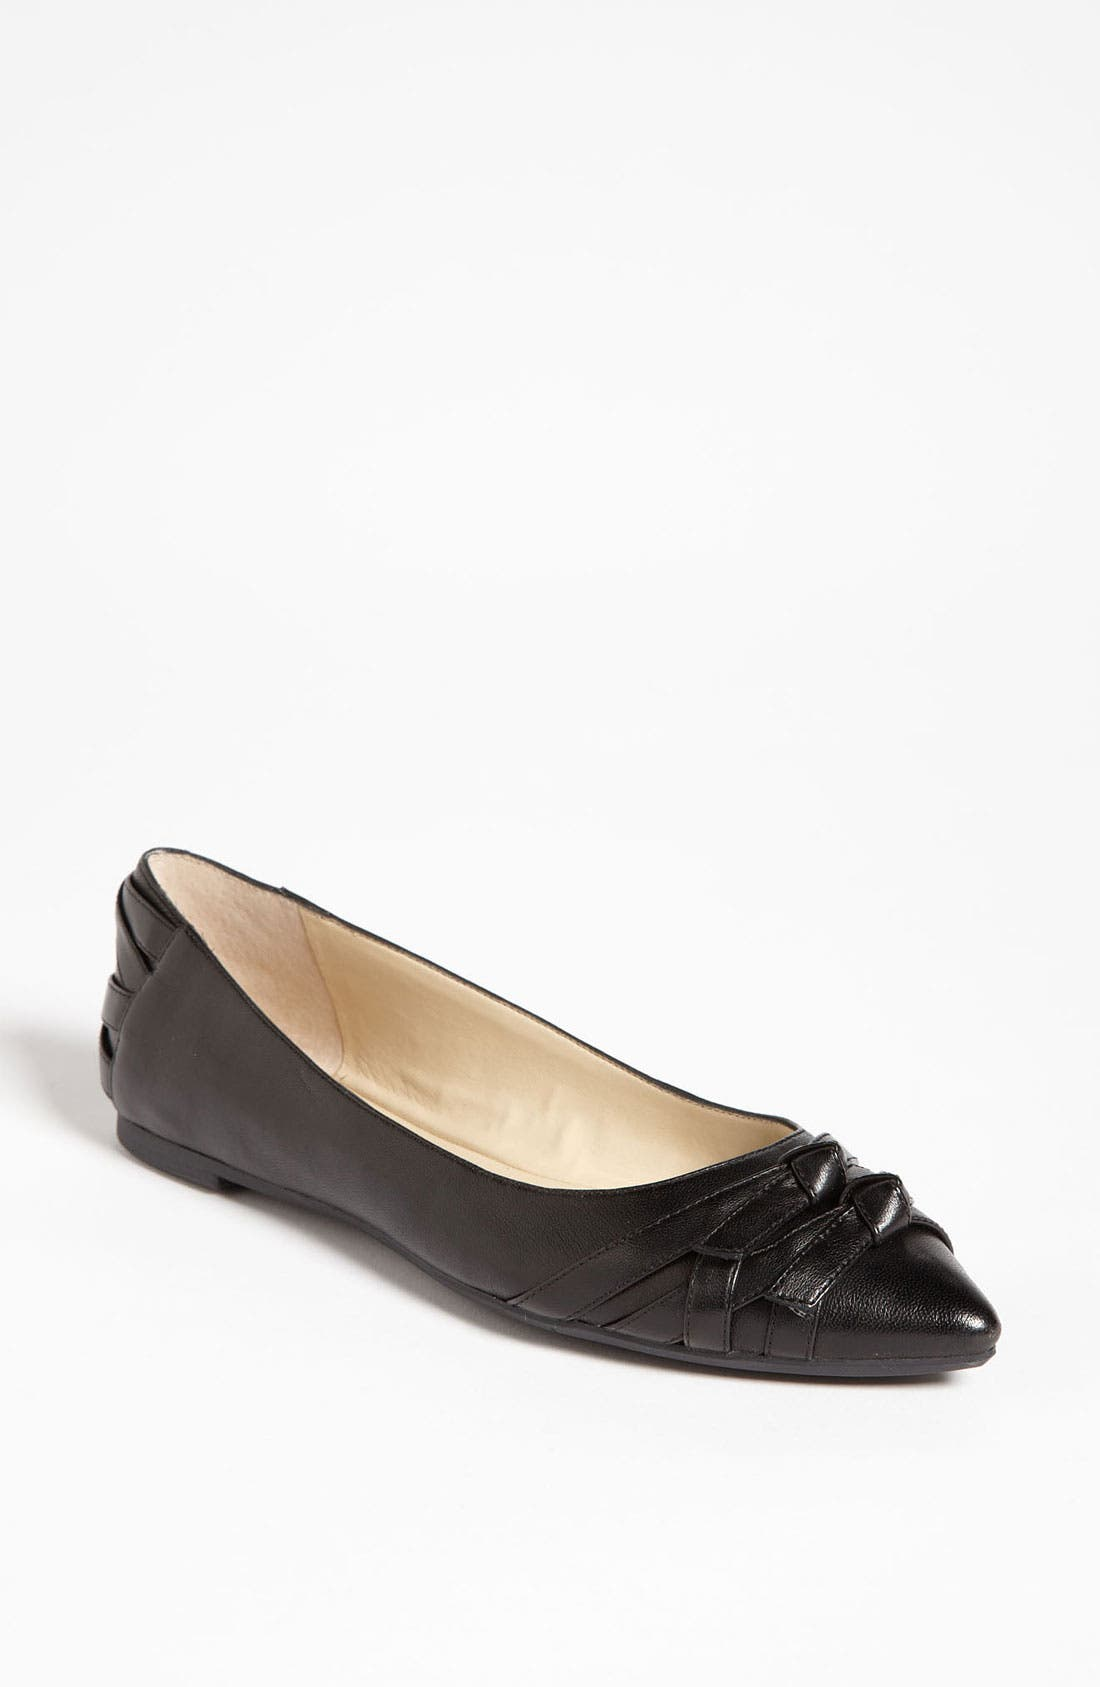 Main Image - Nine West 'Kessler' Flat